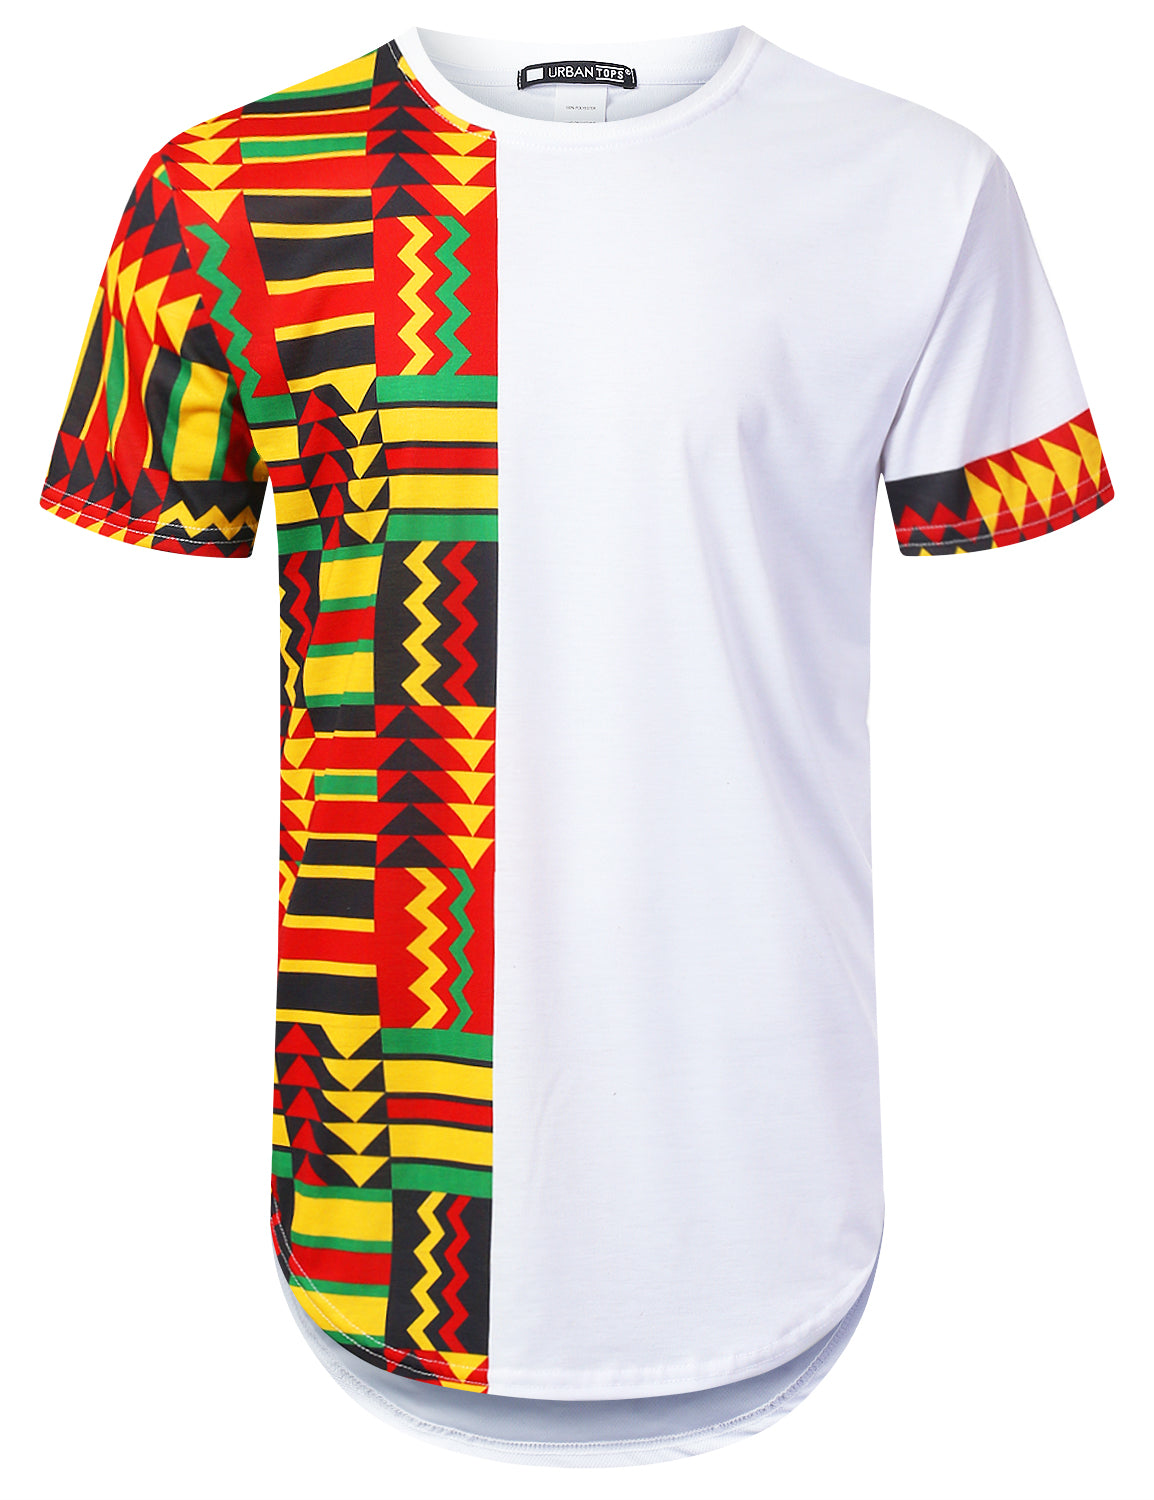 WHITE Half Panel Aztec Longline T-shirt - URBANCREWS